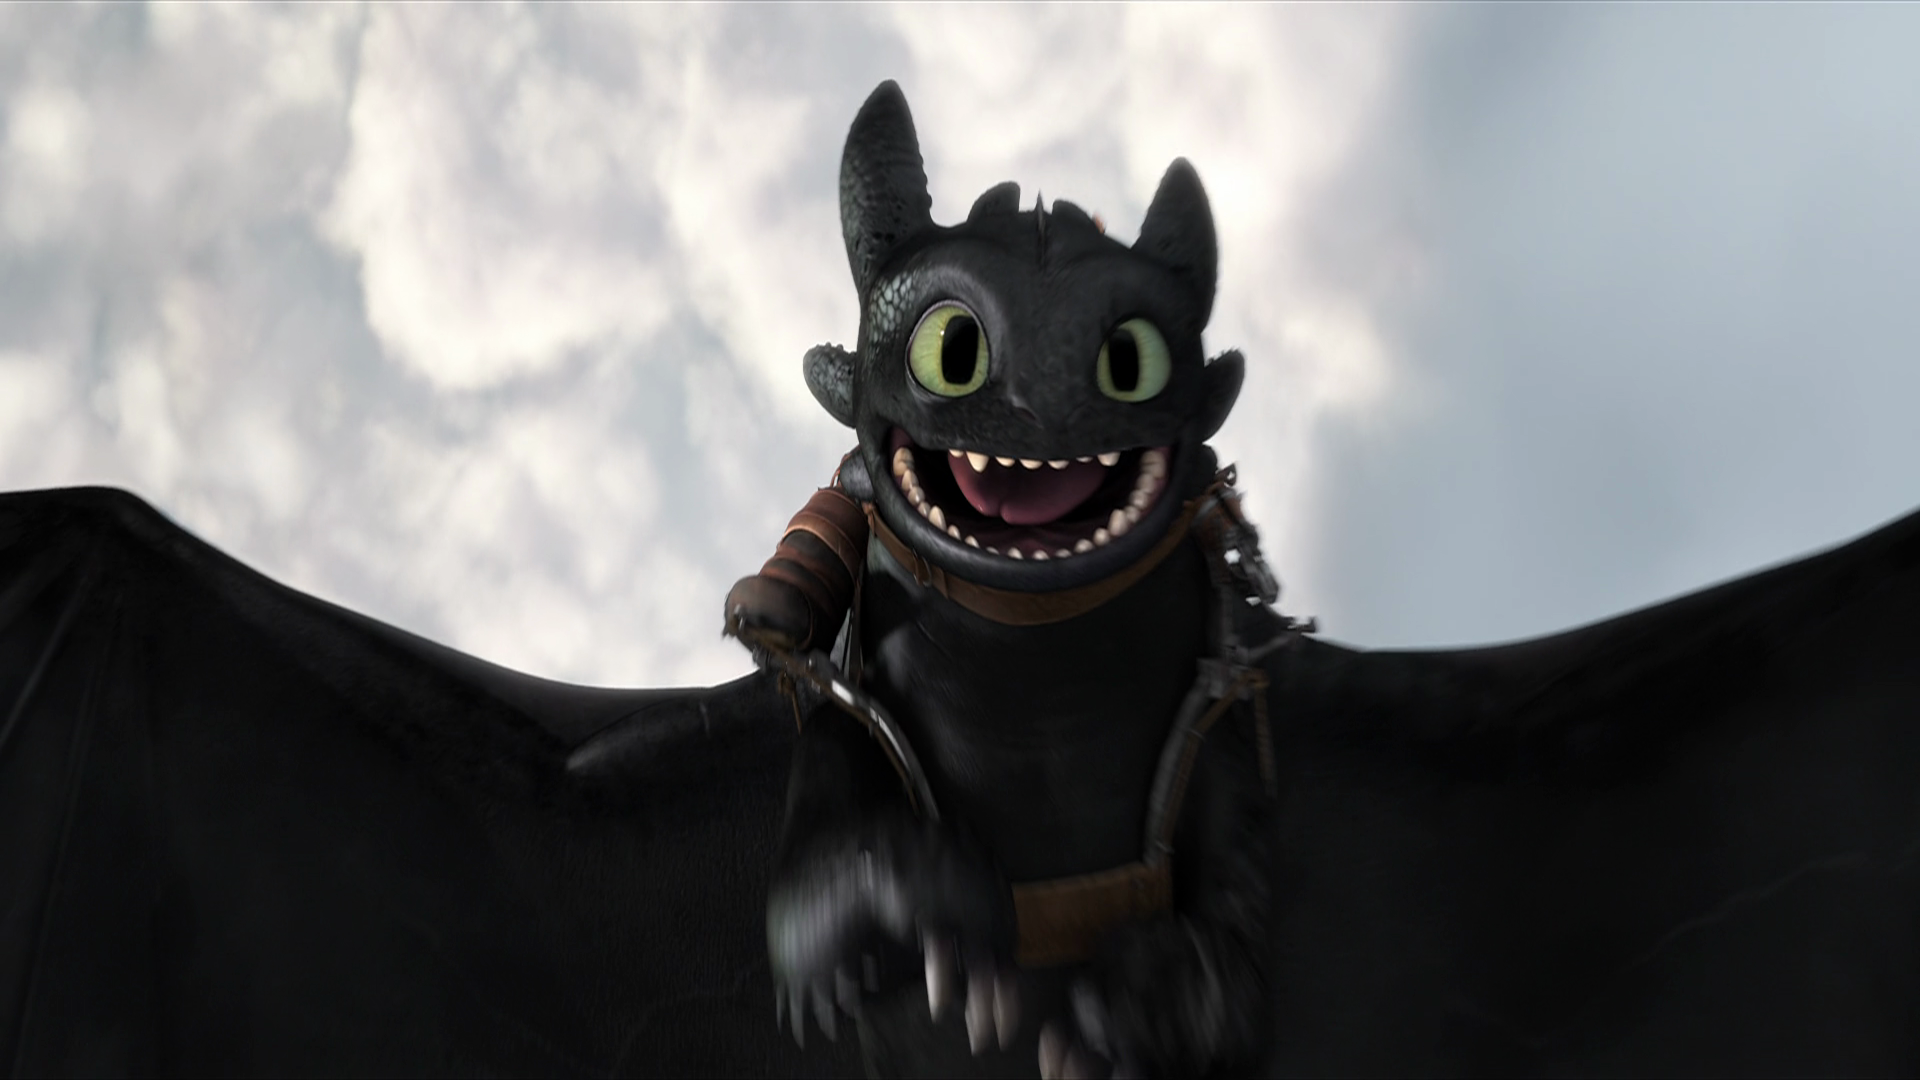 Toothless How To Train Your Dragon Wallpapers ID551669